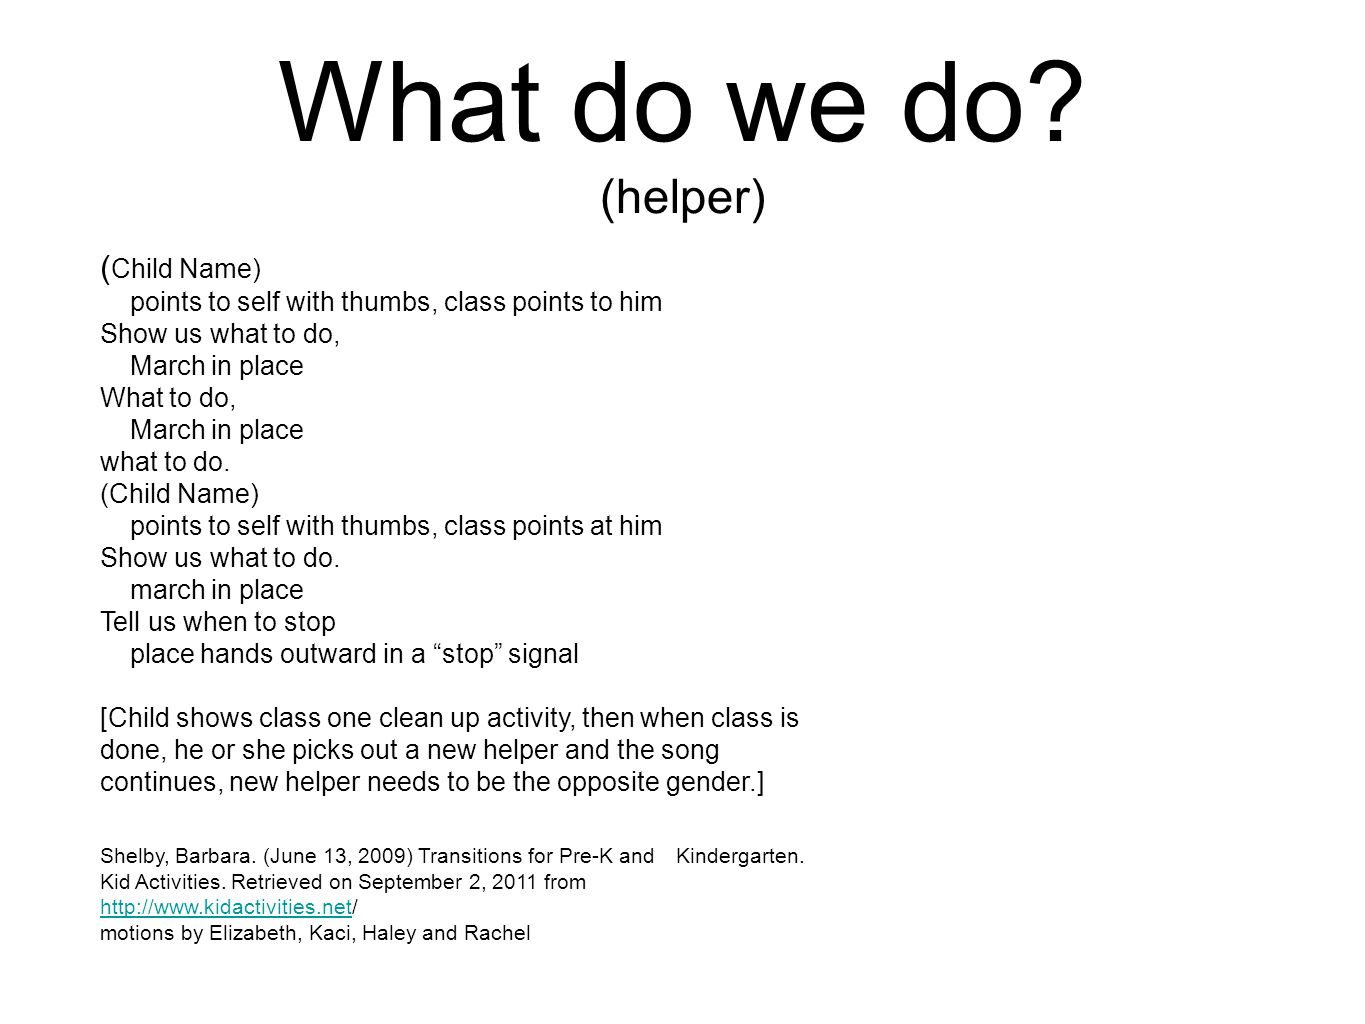 What do we do (helper) (Child Name)